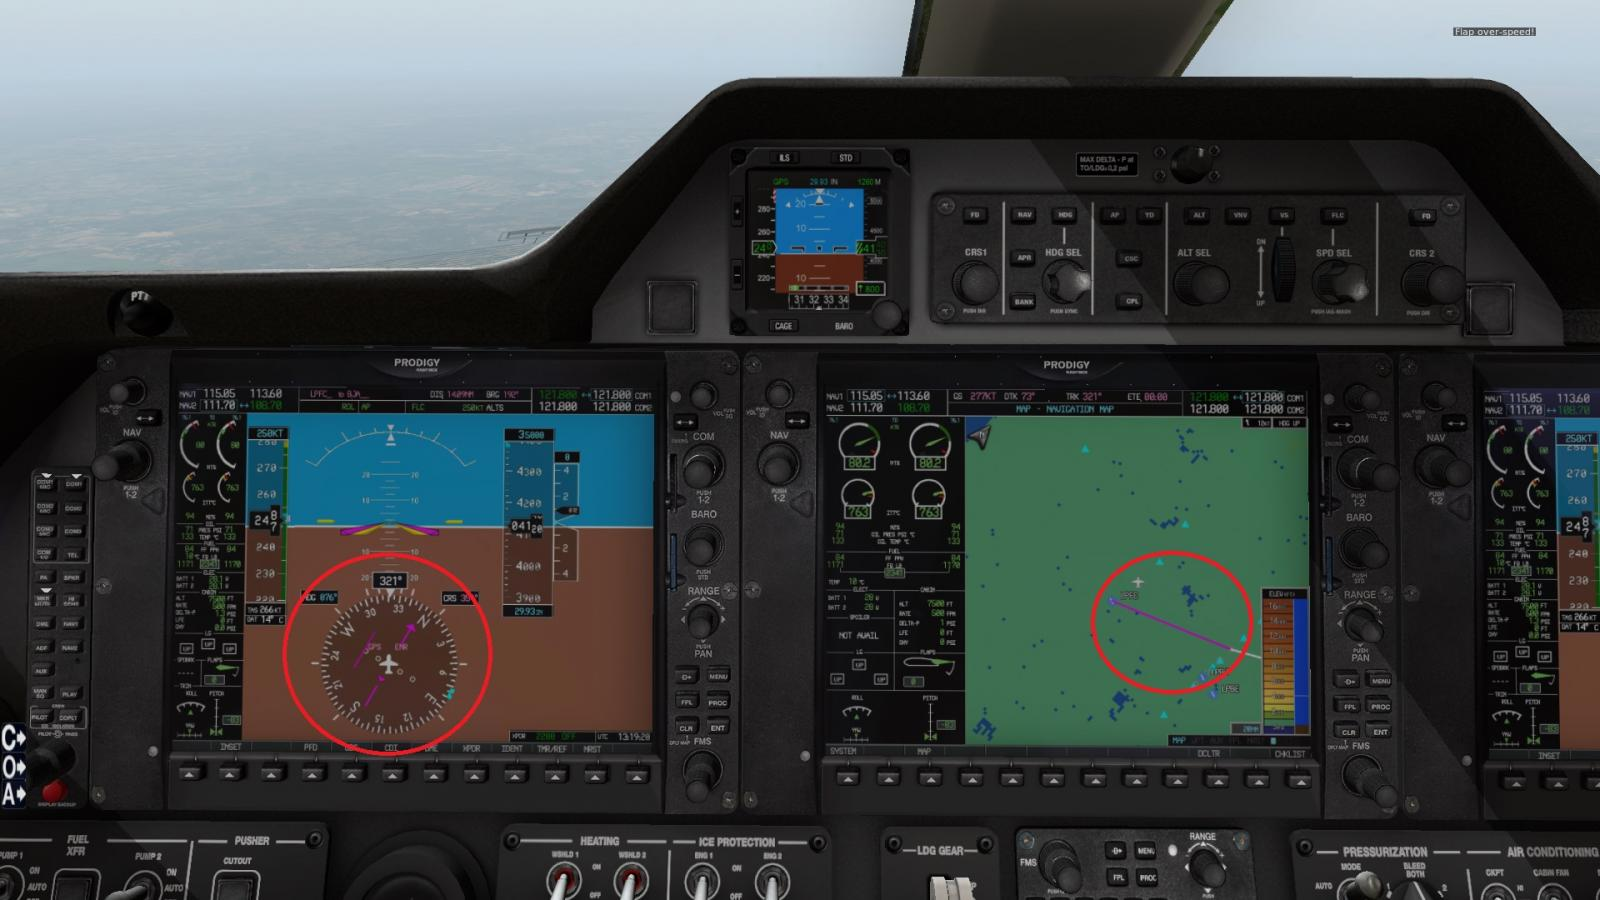 Two issues with the Phenom 100 - power control and autopilot